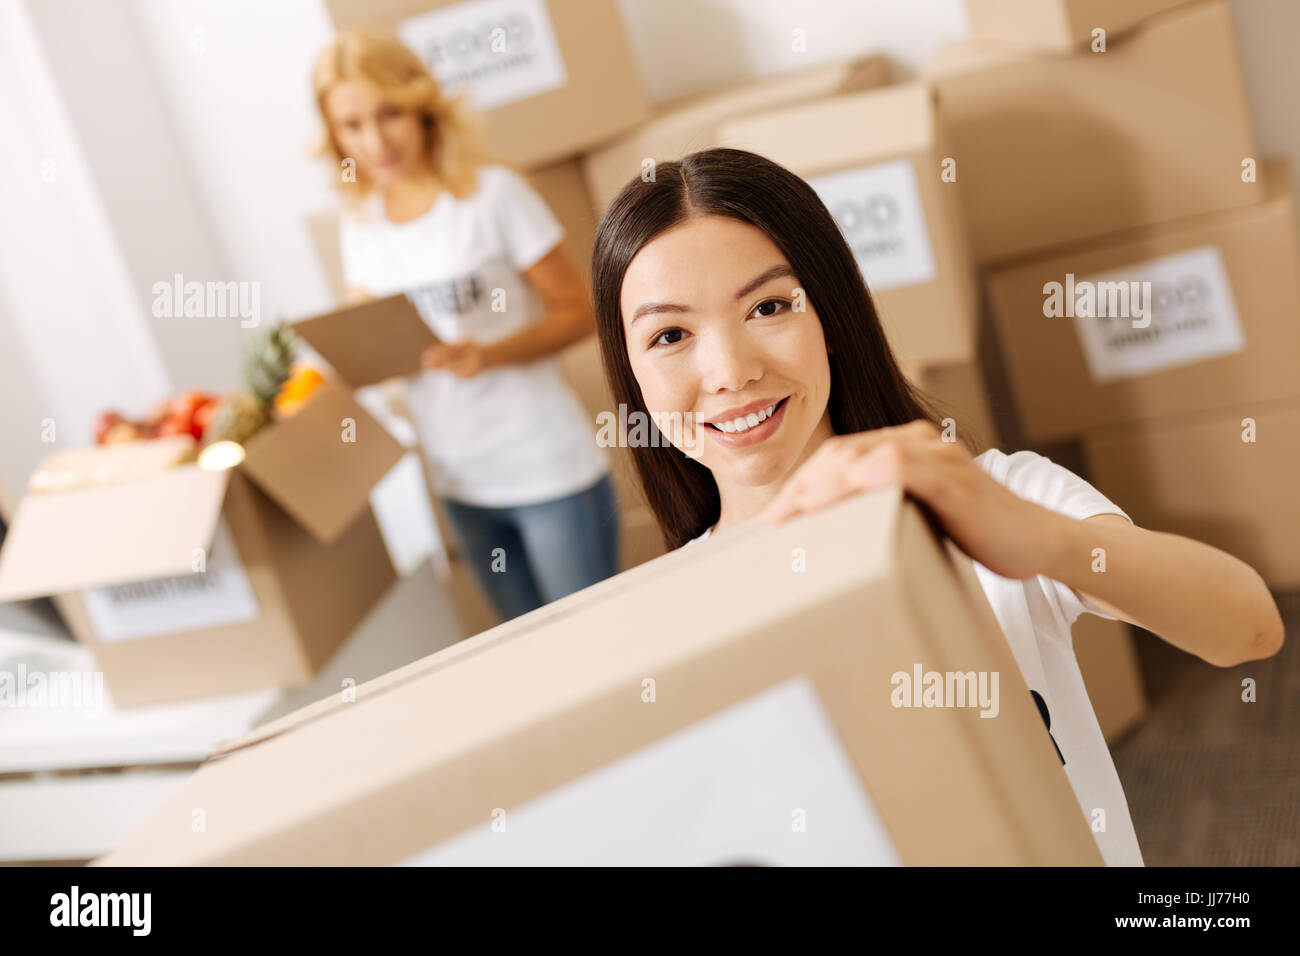 Wonderful energetic woman getting the shipments ready Stock Photo